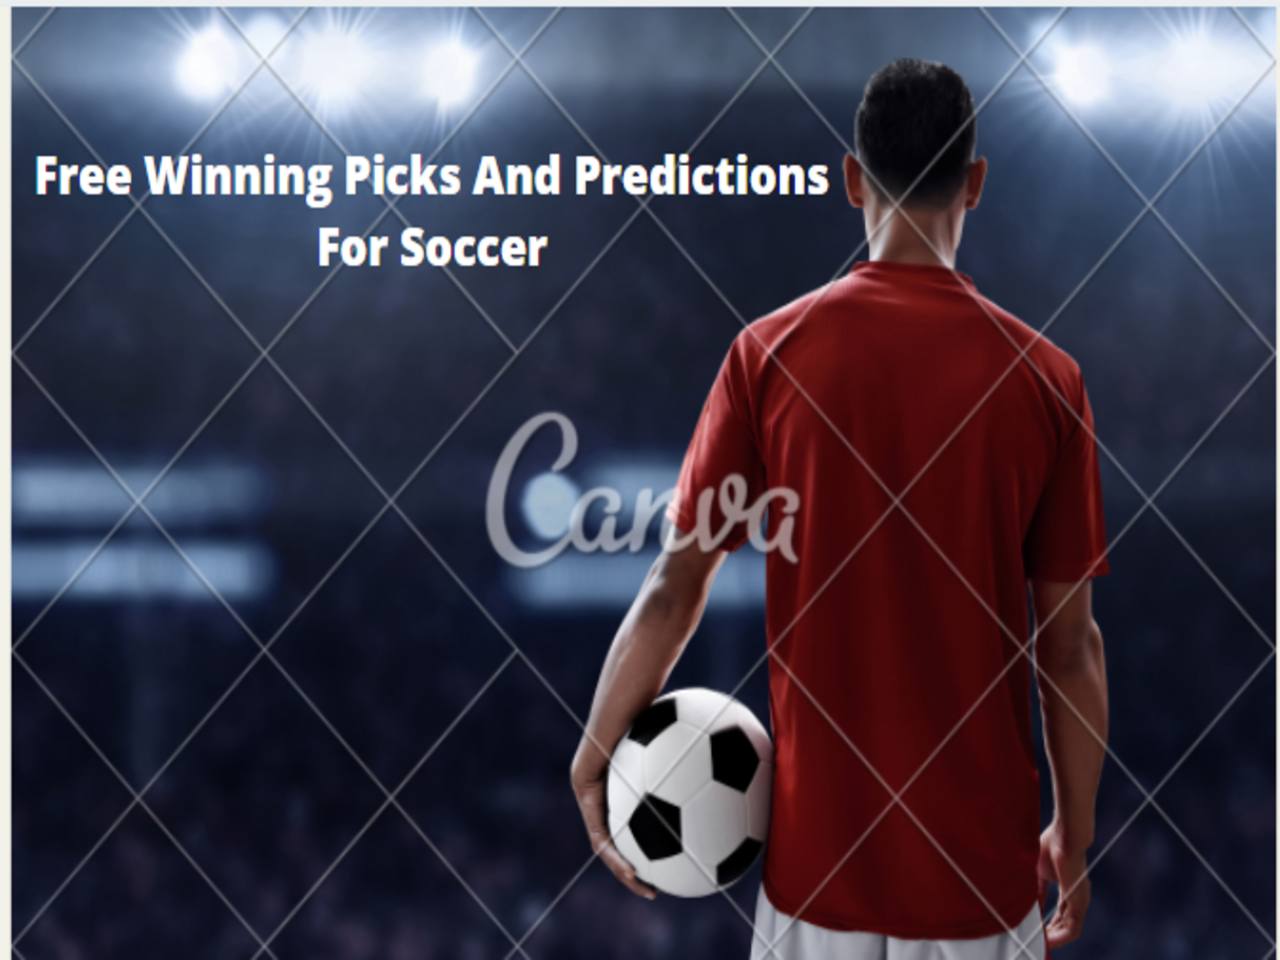 Free Winning Picks And Predictions For Soccer